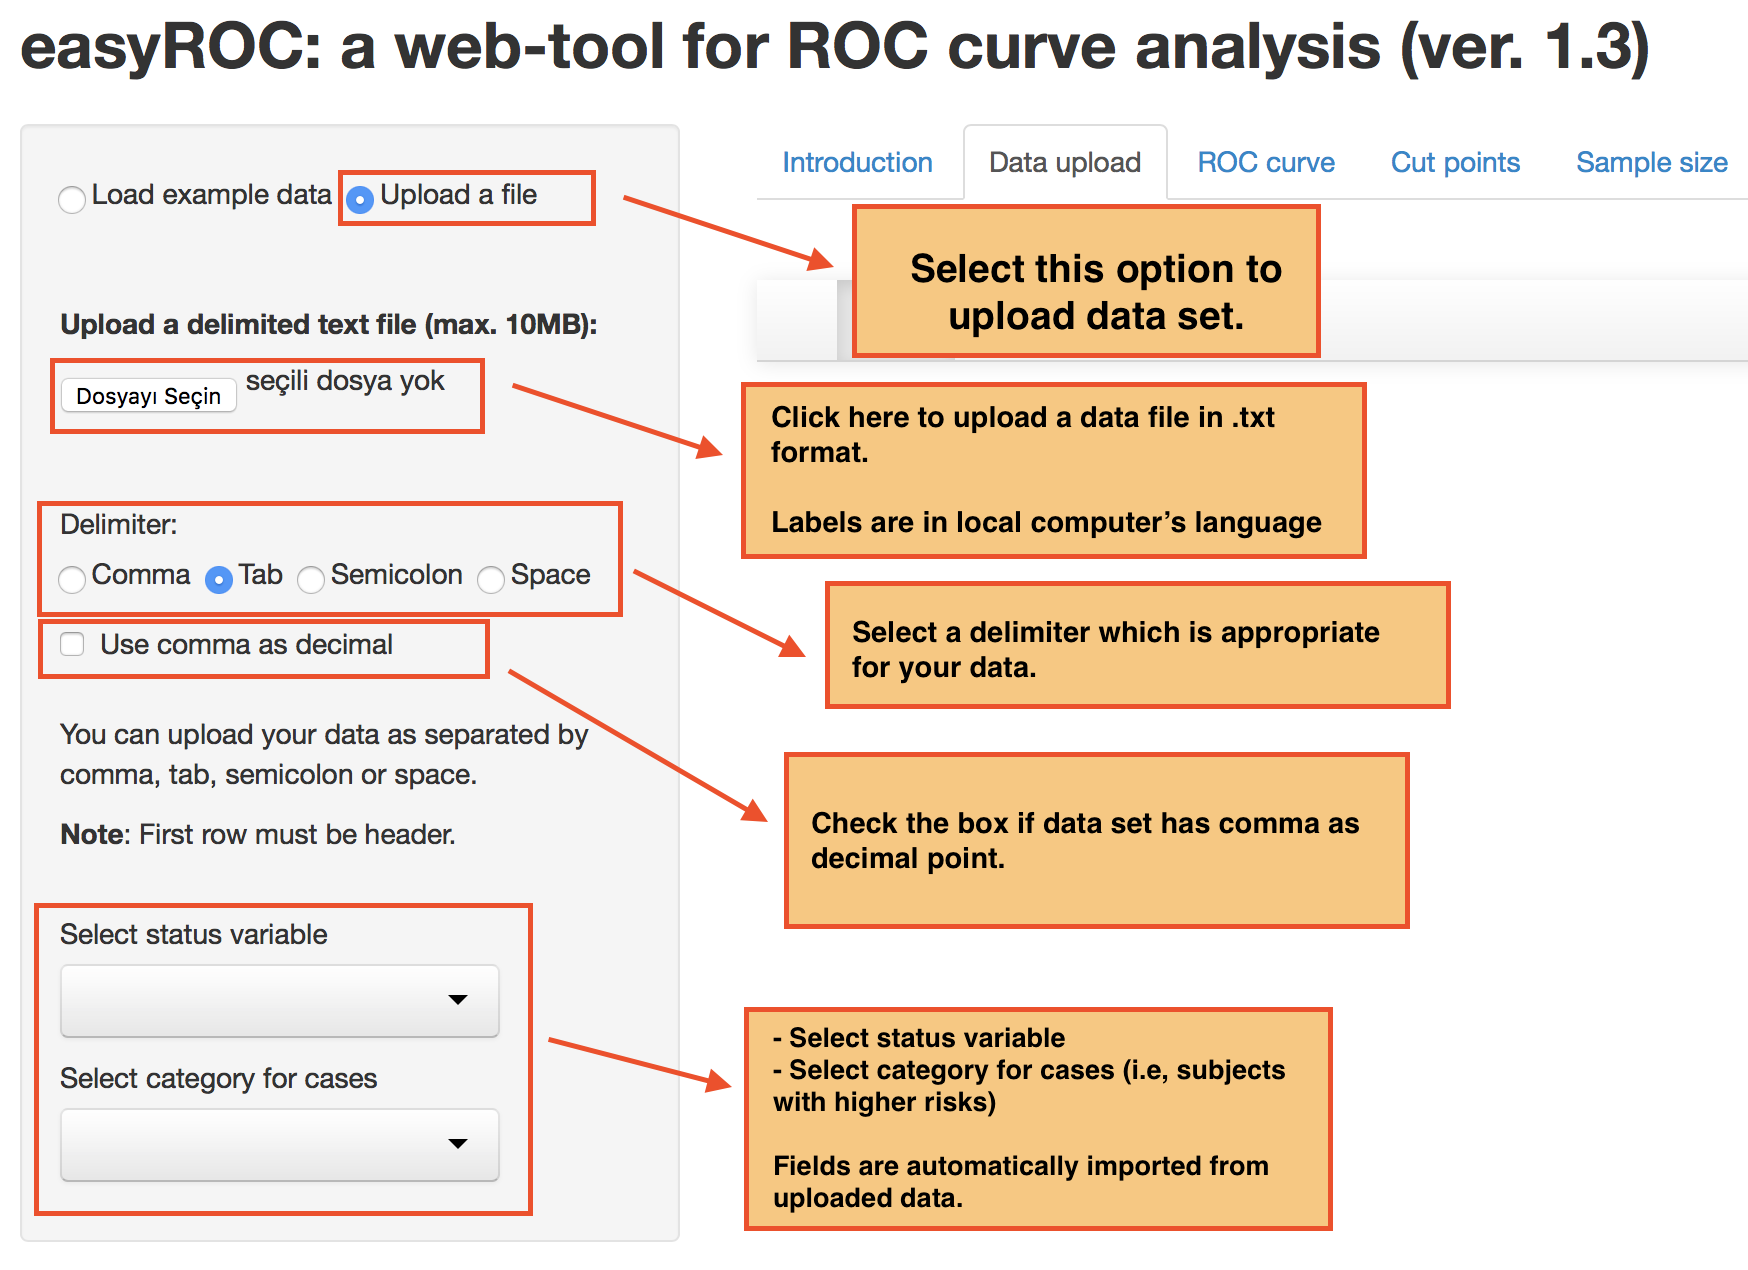 easyROC: a web-tool for ROC curve analysis (ver. 1.3)